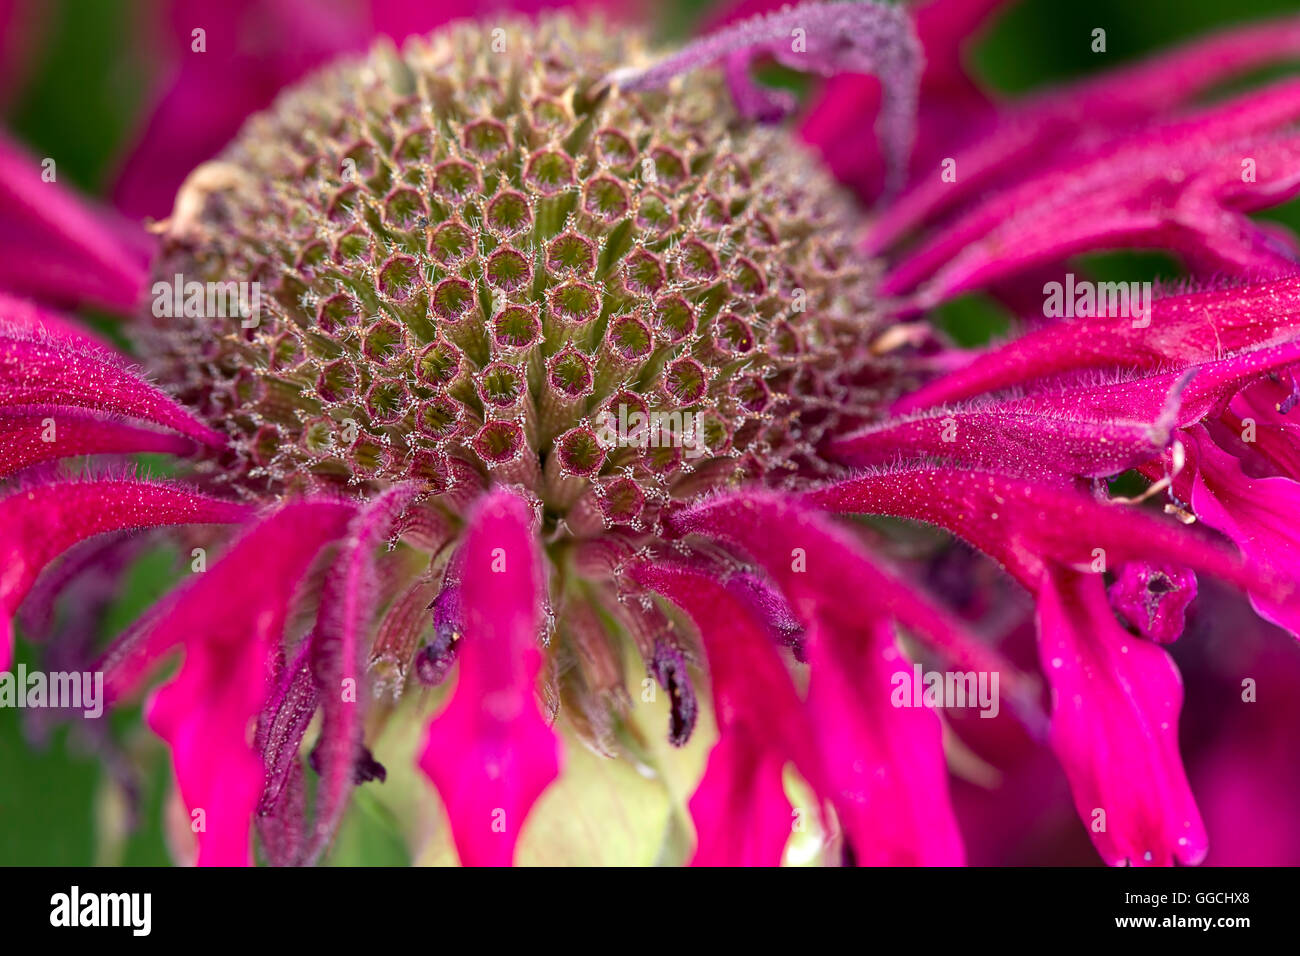 A close up view of the flower of a bee balm plant. - Stock Image